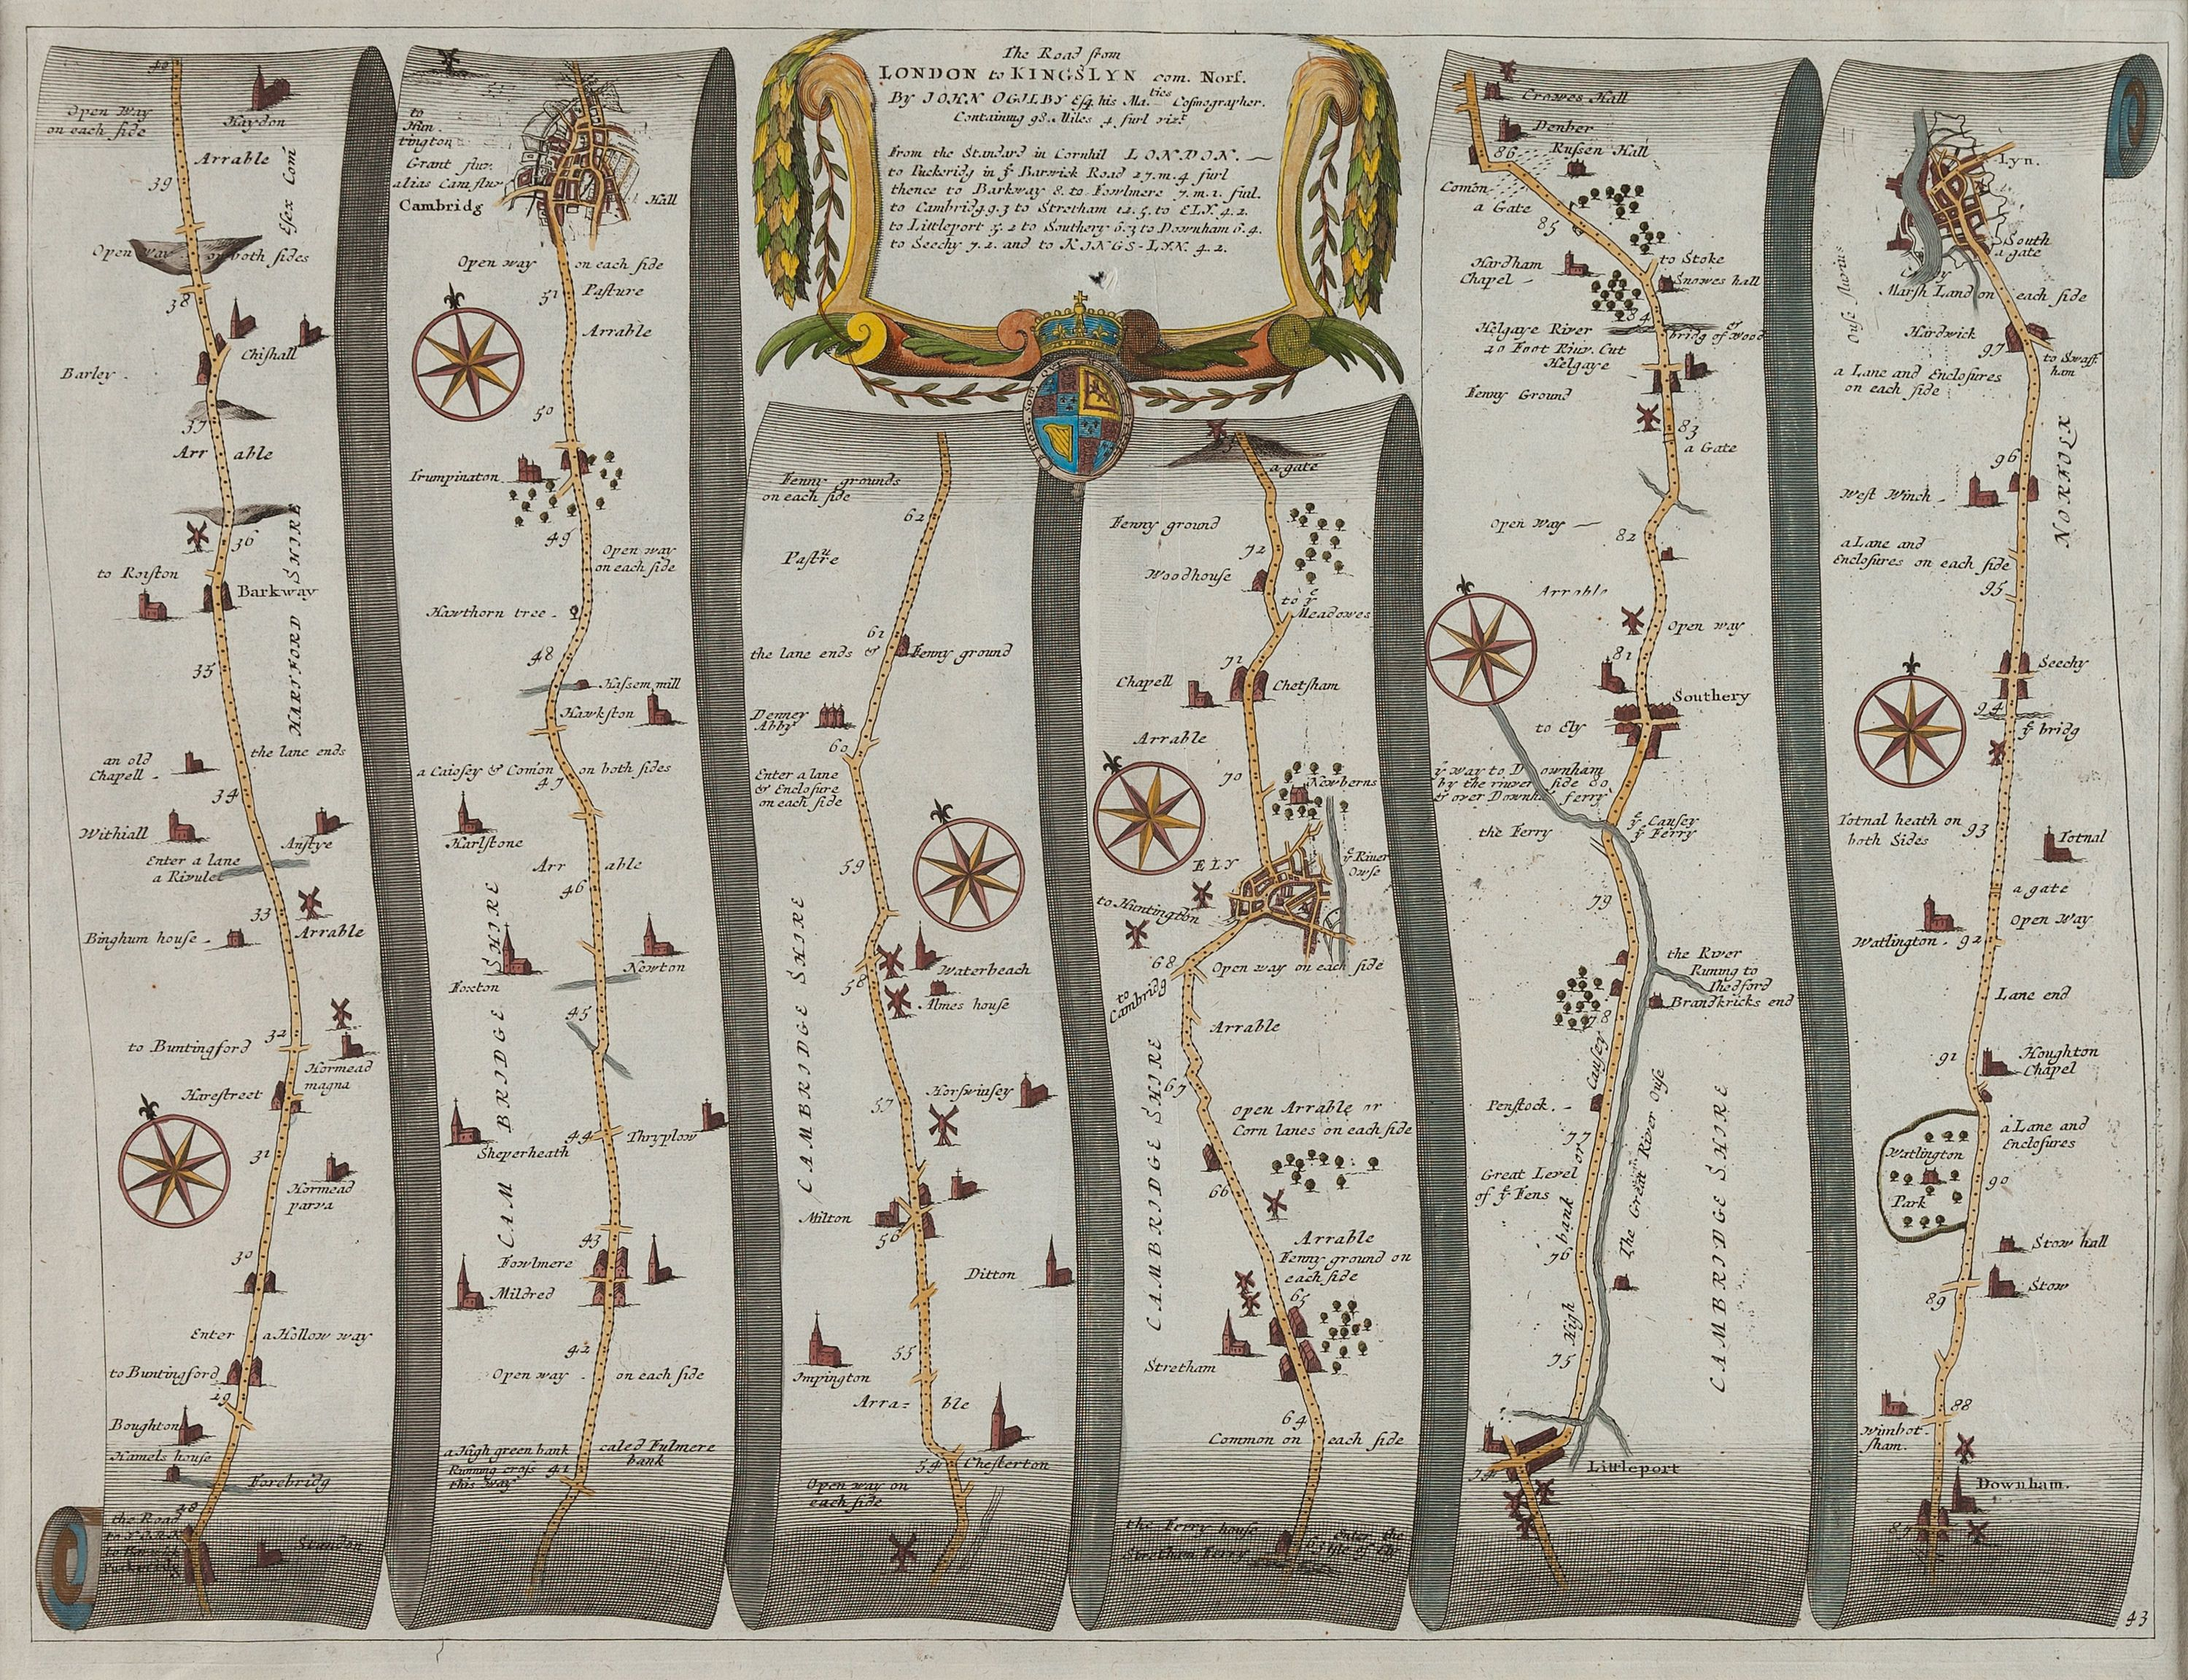 London 1600 Map.John Ogilby 1600 1676 Cartographer The Road From London To